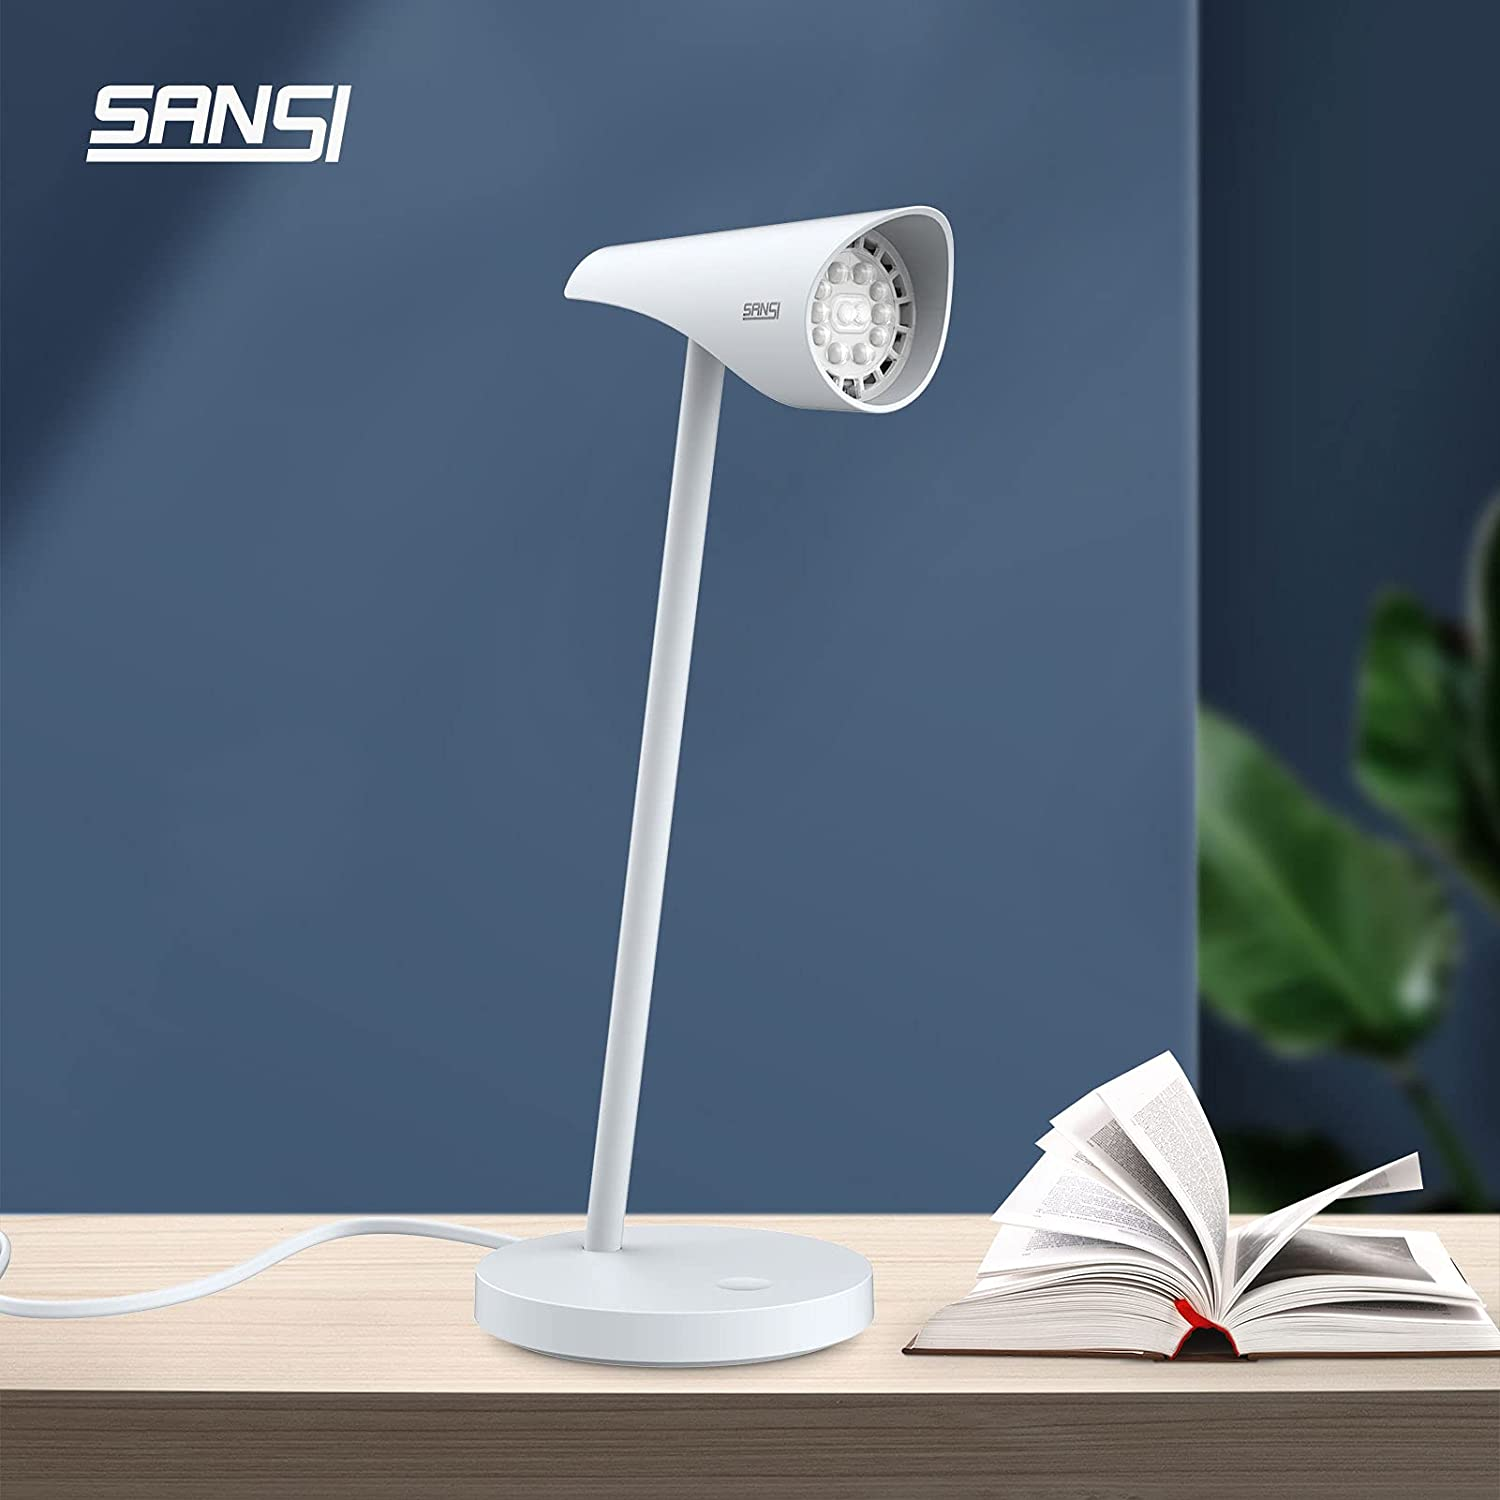 Max 59% OFF SANSI LED Desk Lamp with COC Eye-Caring Superior Lam Table 6W Technology